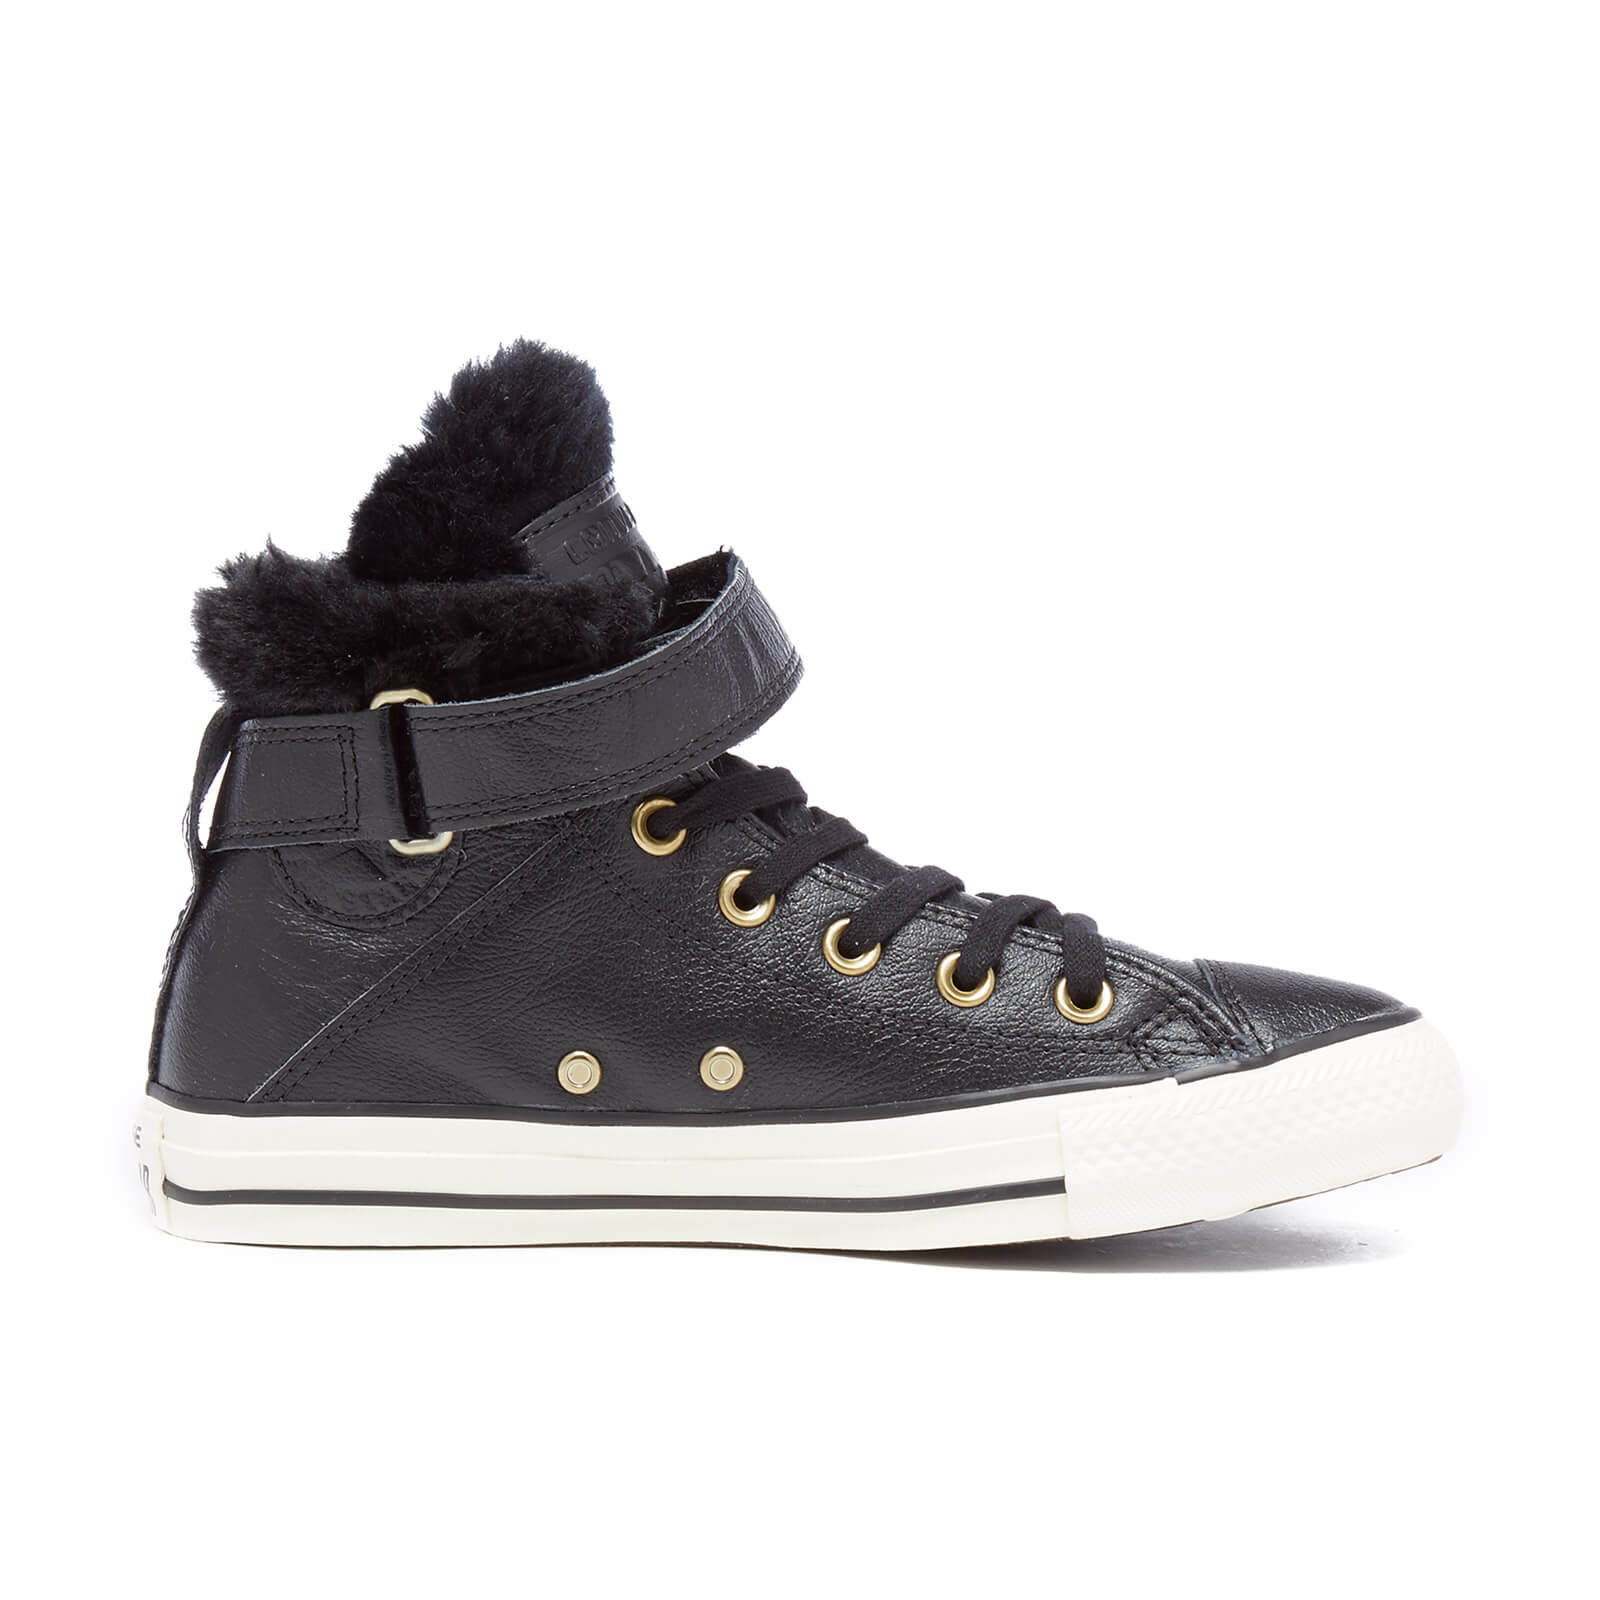 Converse Women's Chuck Taylor All Star Brea Leather Fur Hi Top Trainers BlackBlack